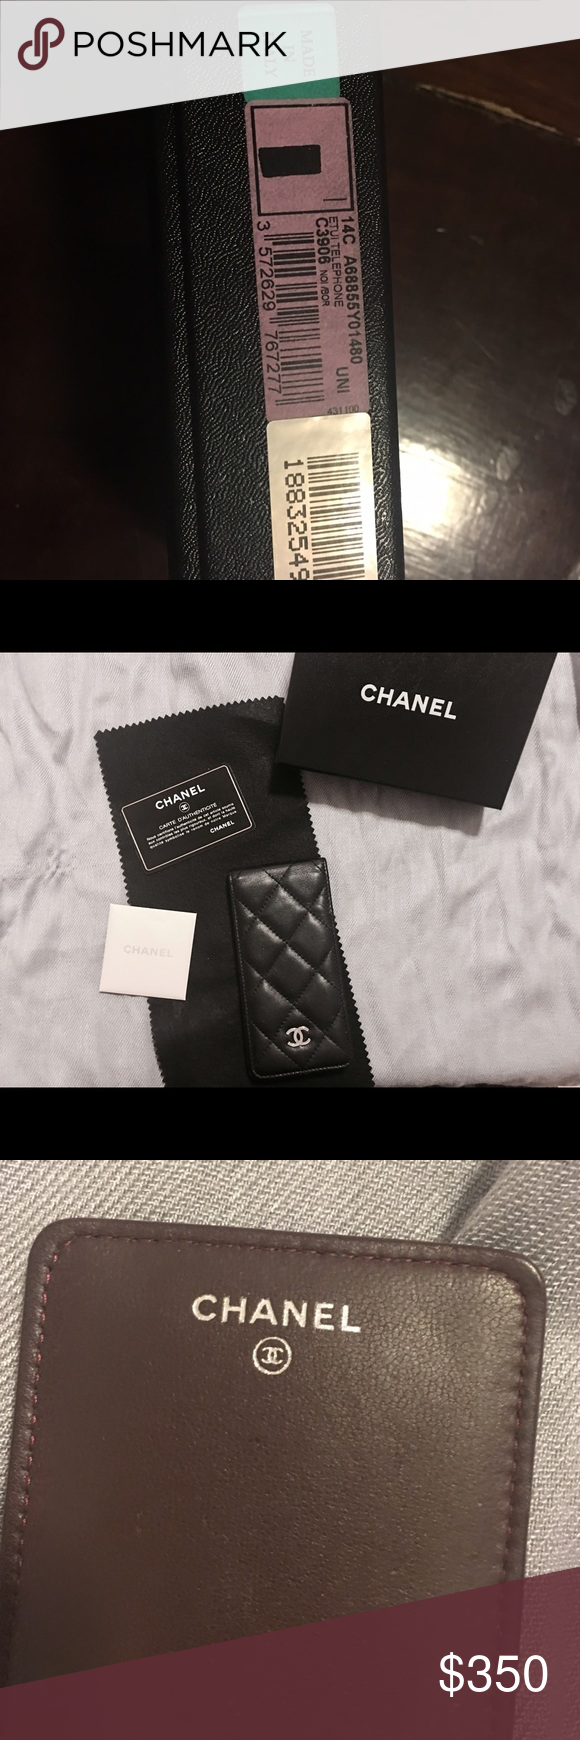 Chanel iPhone 5/SE Phone Case Authentic Chanel iPhone 5/SE phone case. It's in its original packaging and is in perfect condition, it also comes with its authenticity card as serial number. CHANEL Accessories Phone Cases